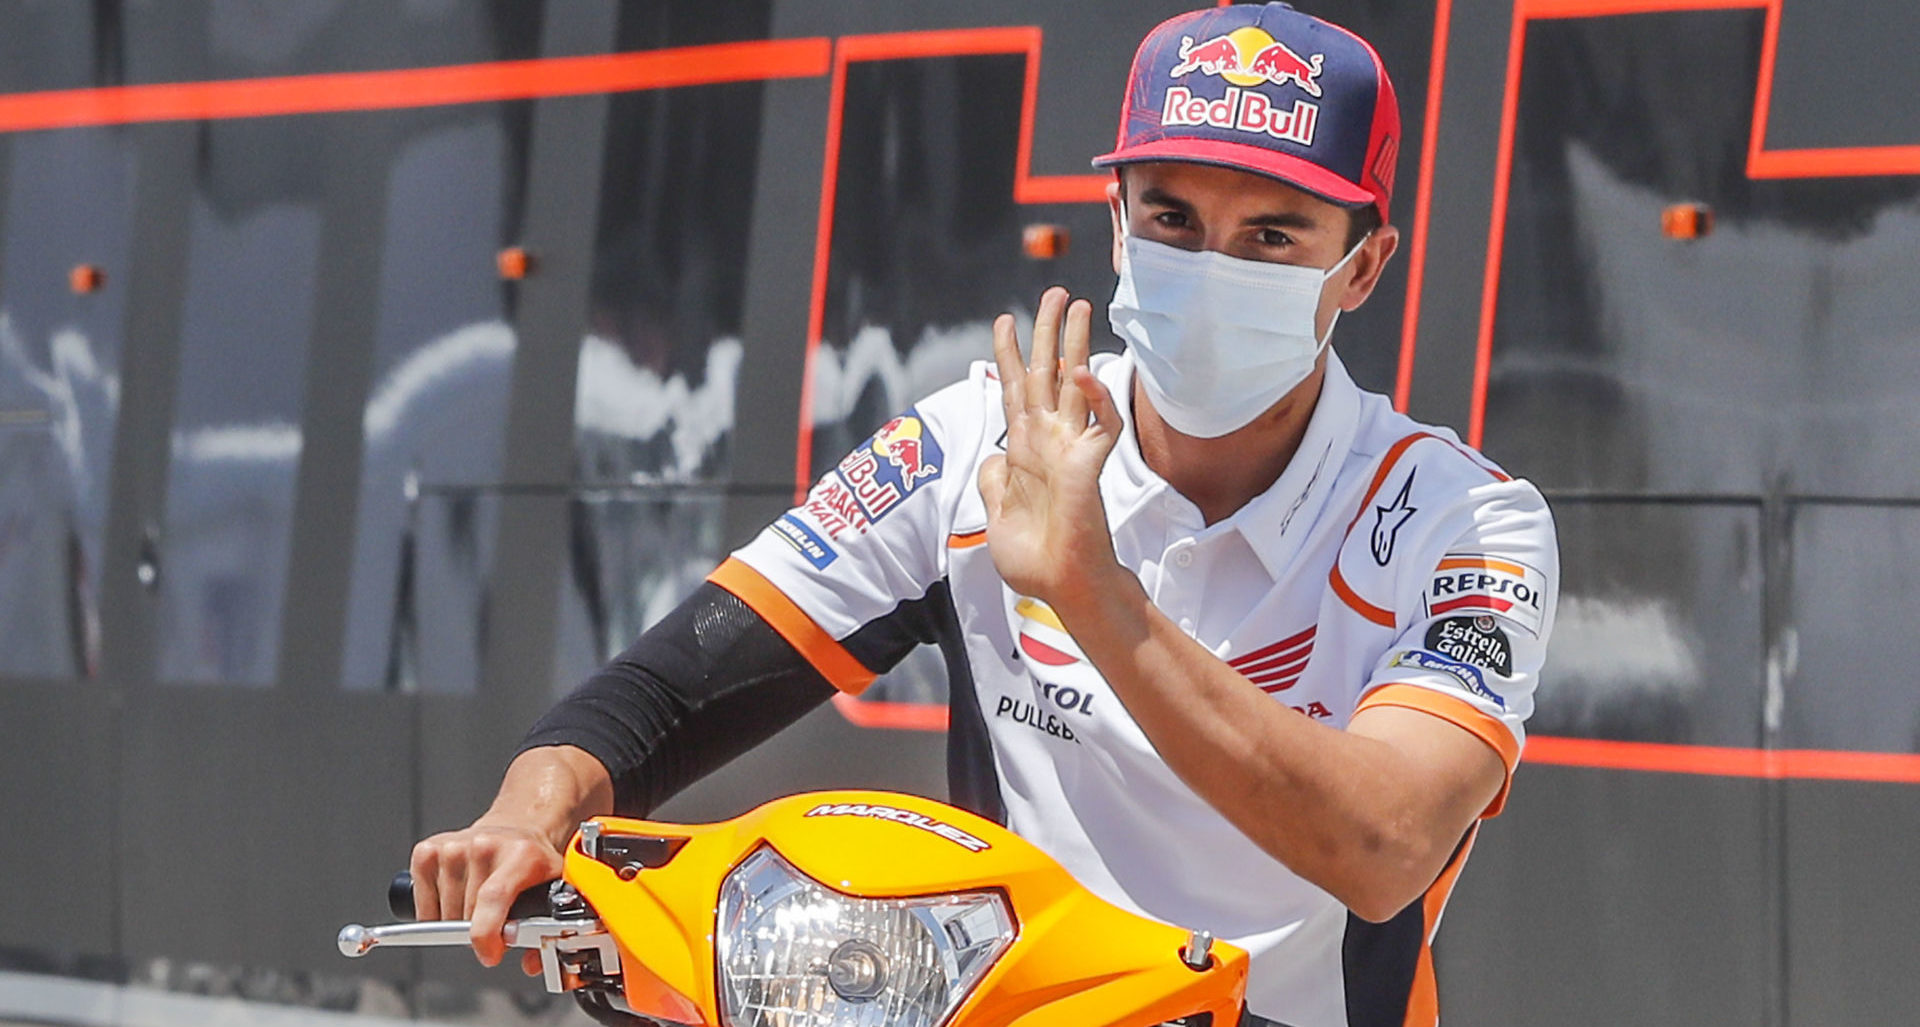 MotoGP: Marc Marquez Could Be Out 2-3 Months - Roadracing World Magazine    Motorcycle Riding, Racing & Tech News